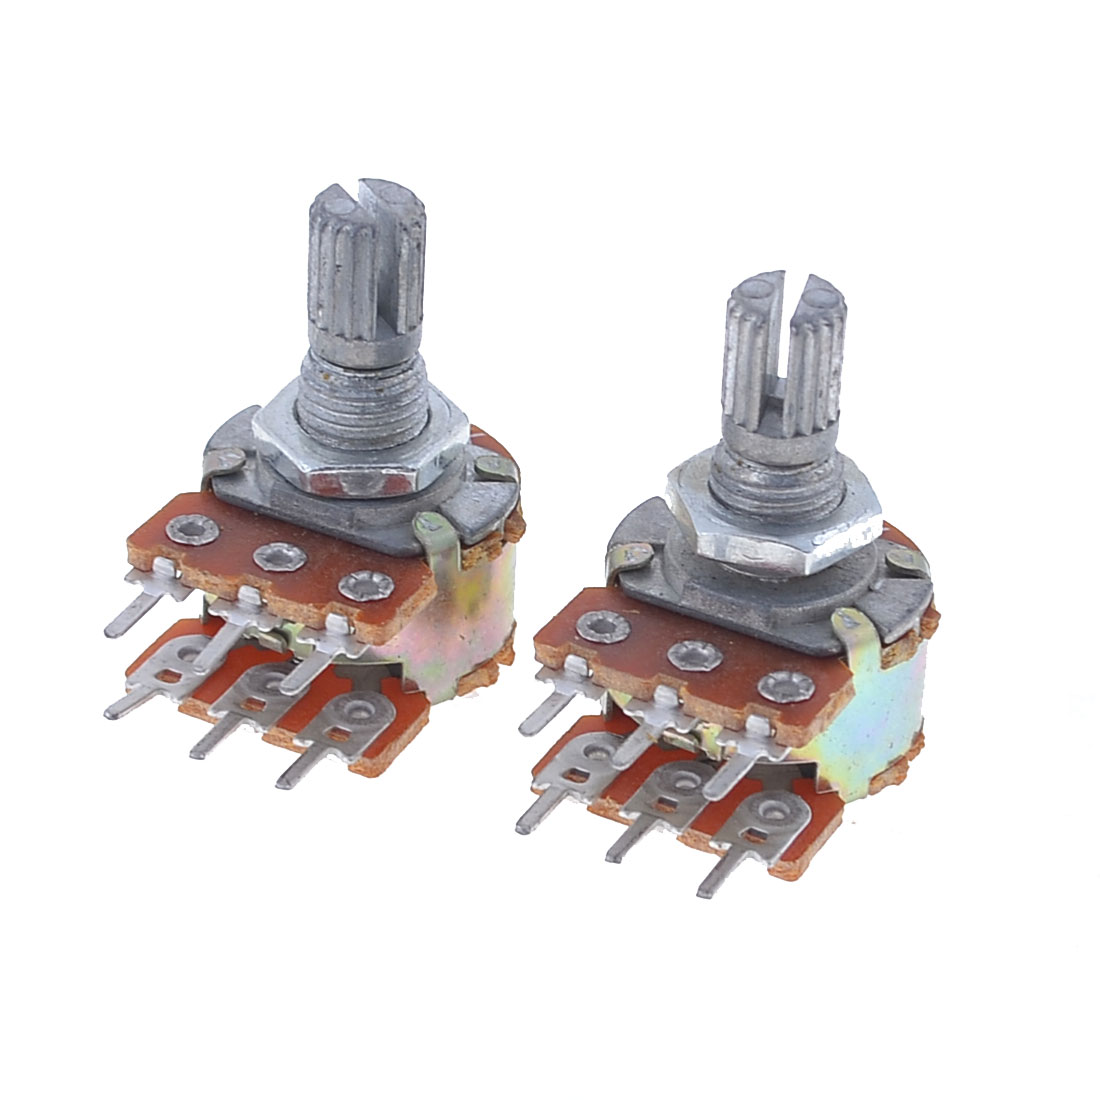 2 Pcs B100K 100K Ohm Dual Linear Rotary Shaft Taper Pot Potentiometer